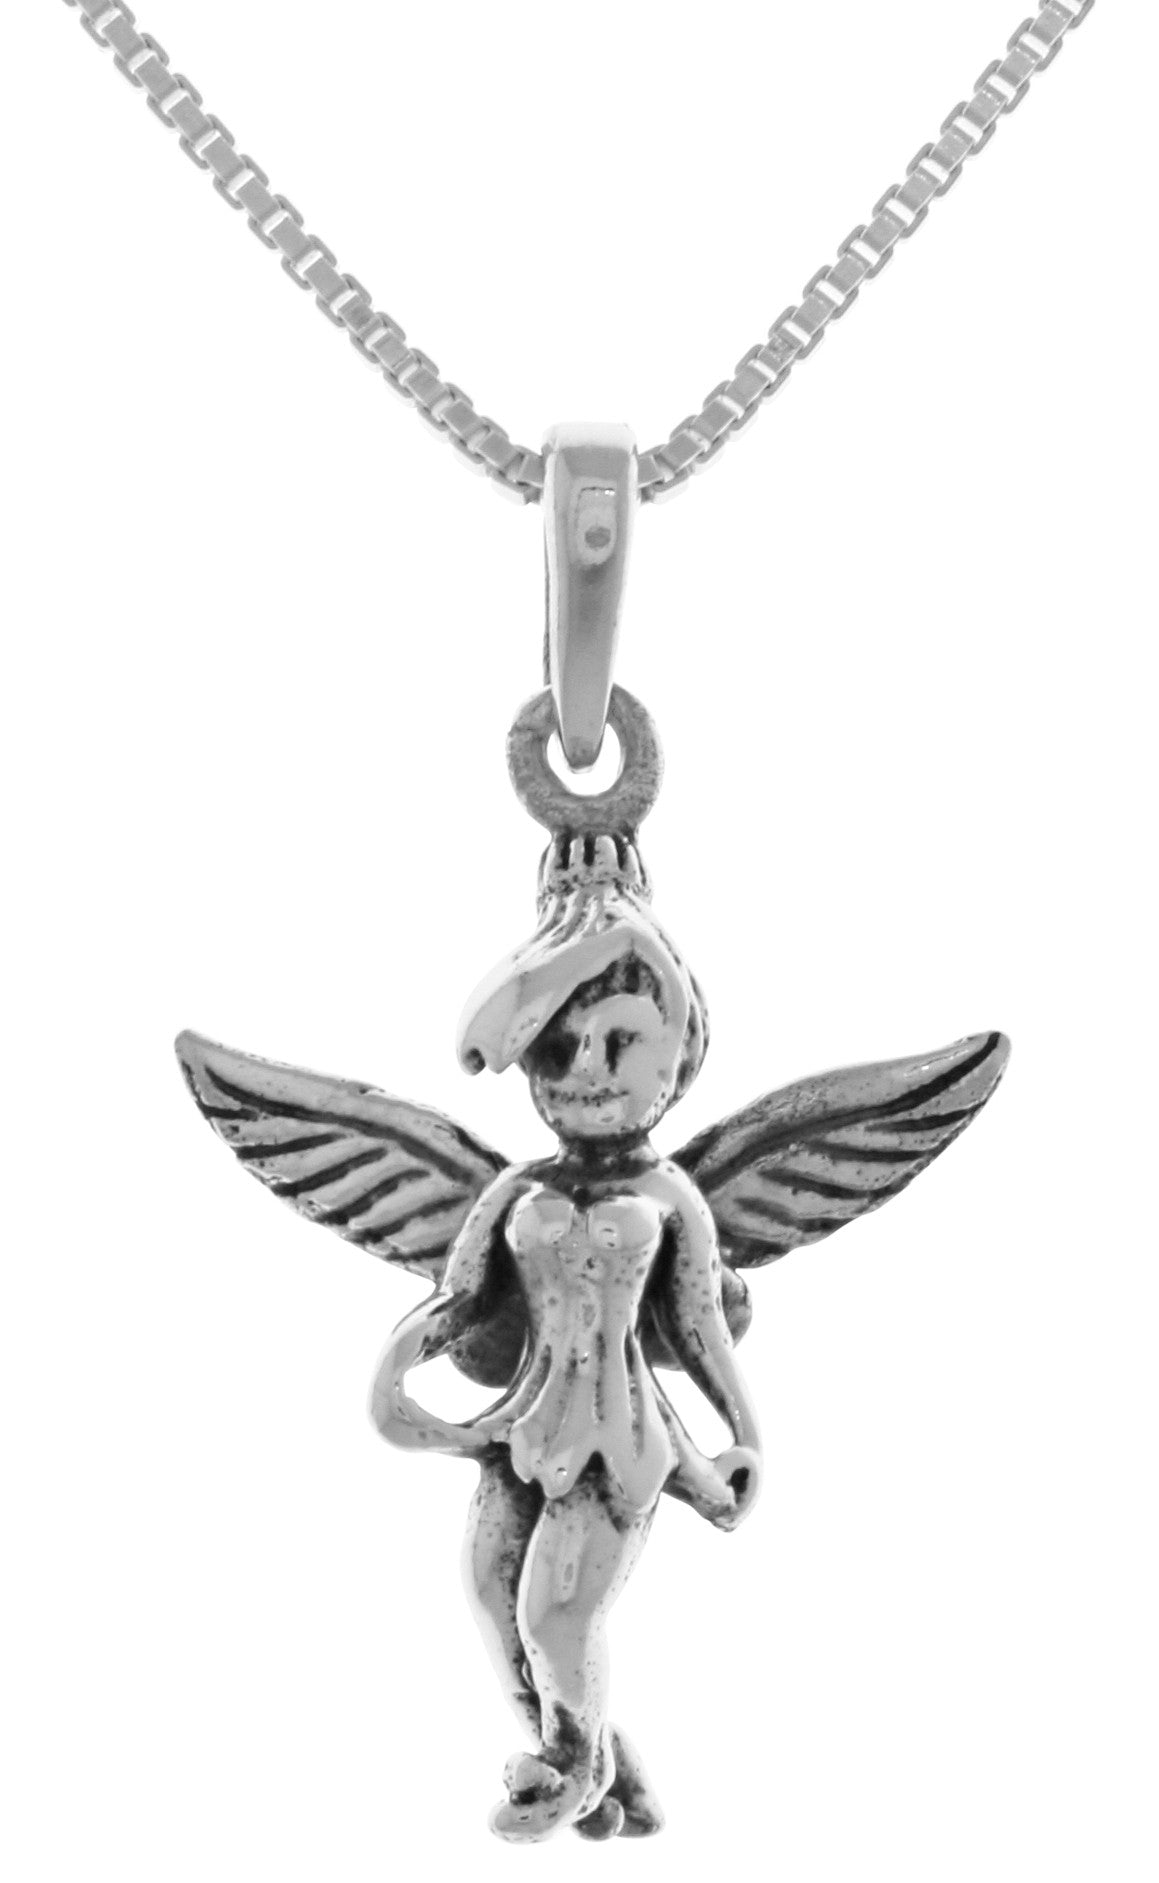 qvc page fastener uk qz product necklace fairy